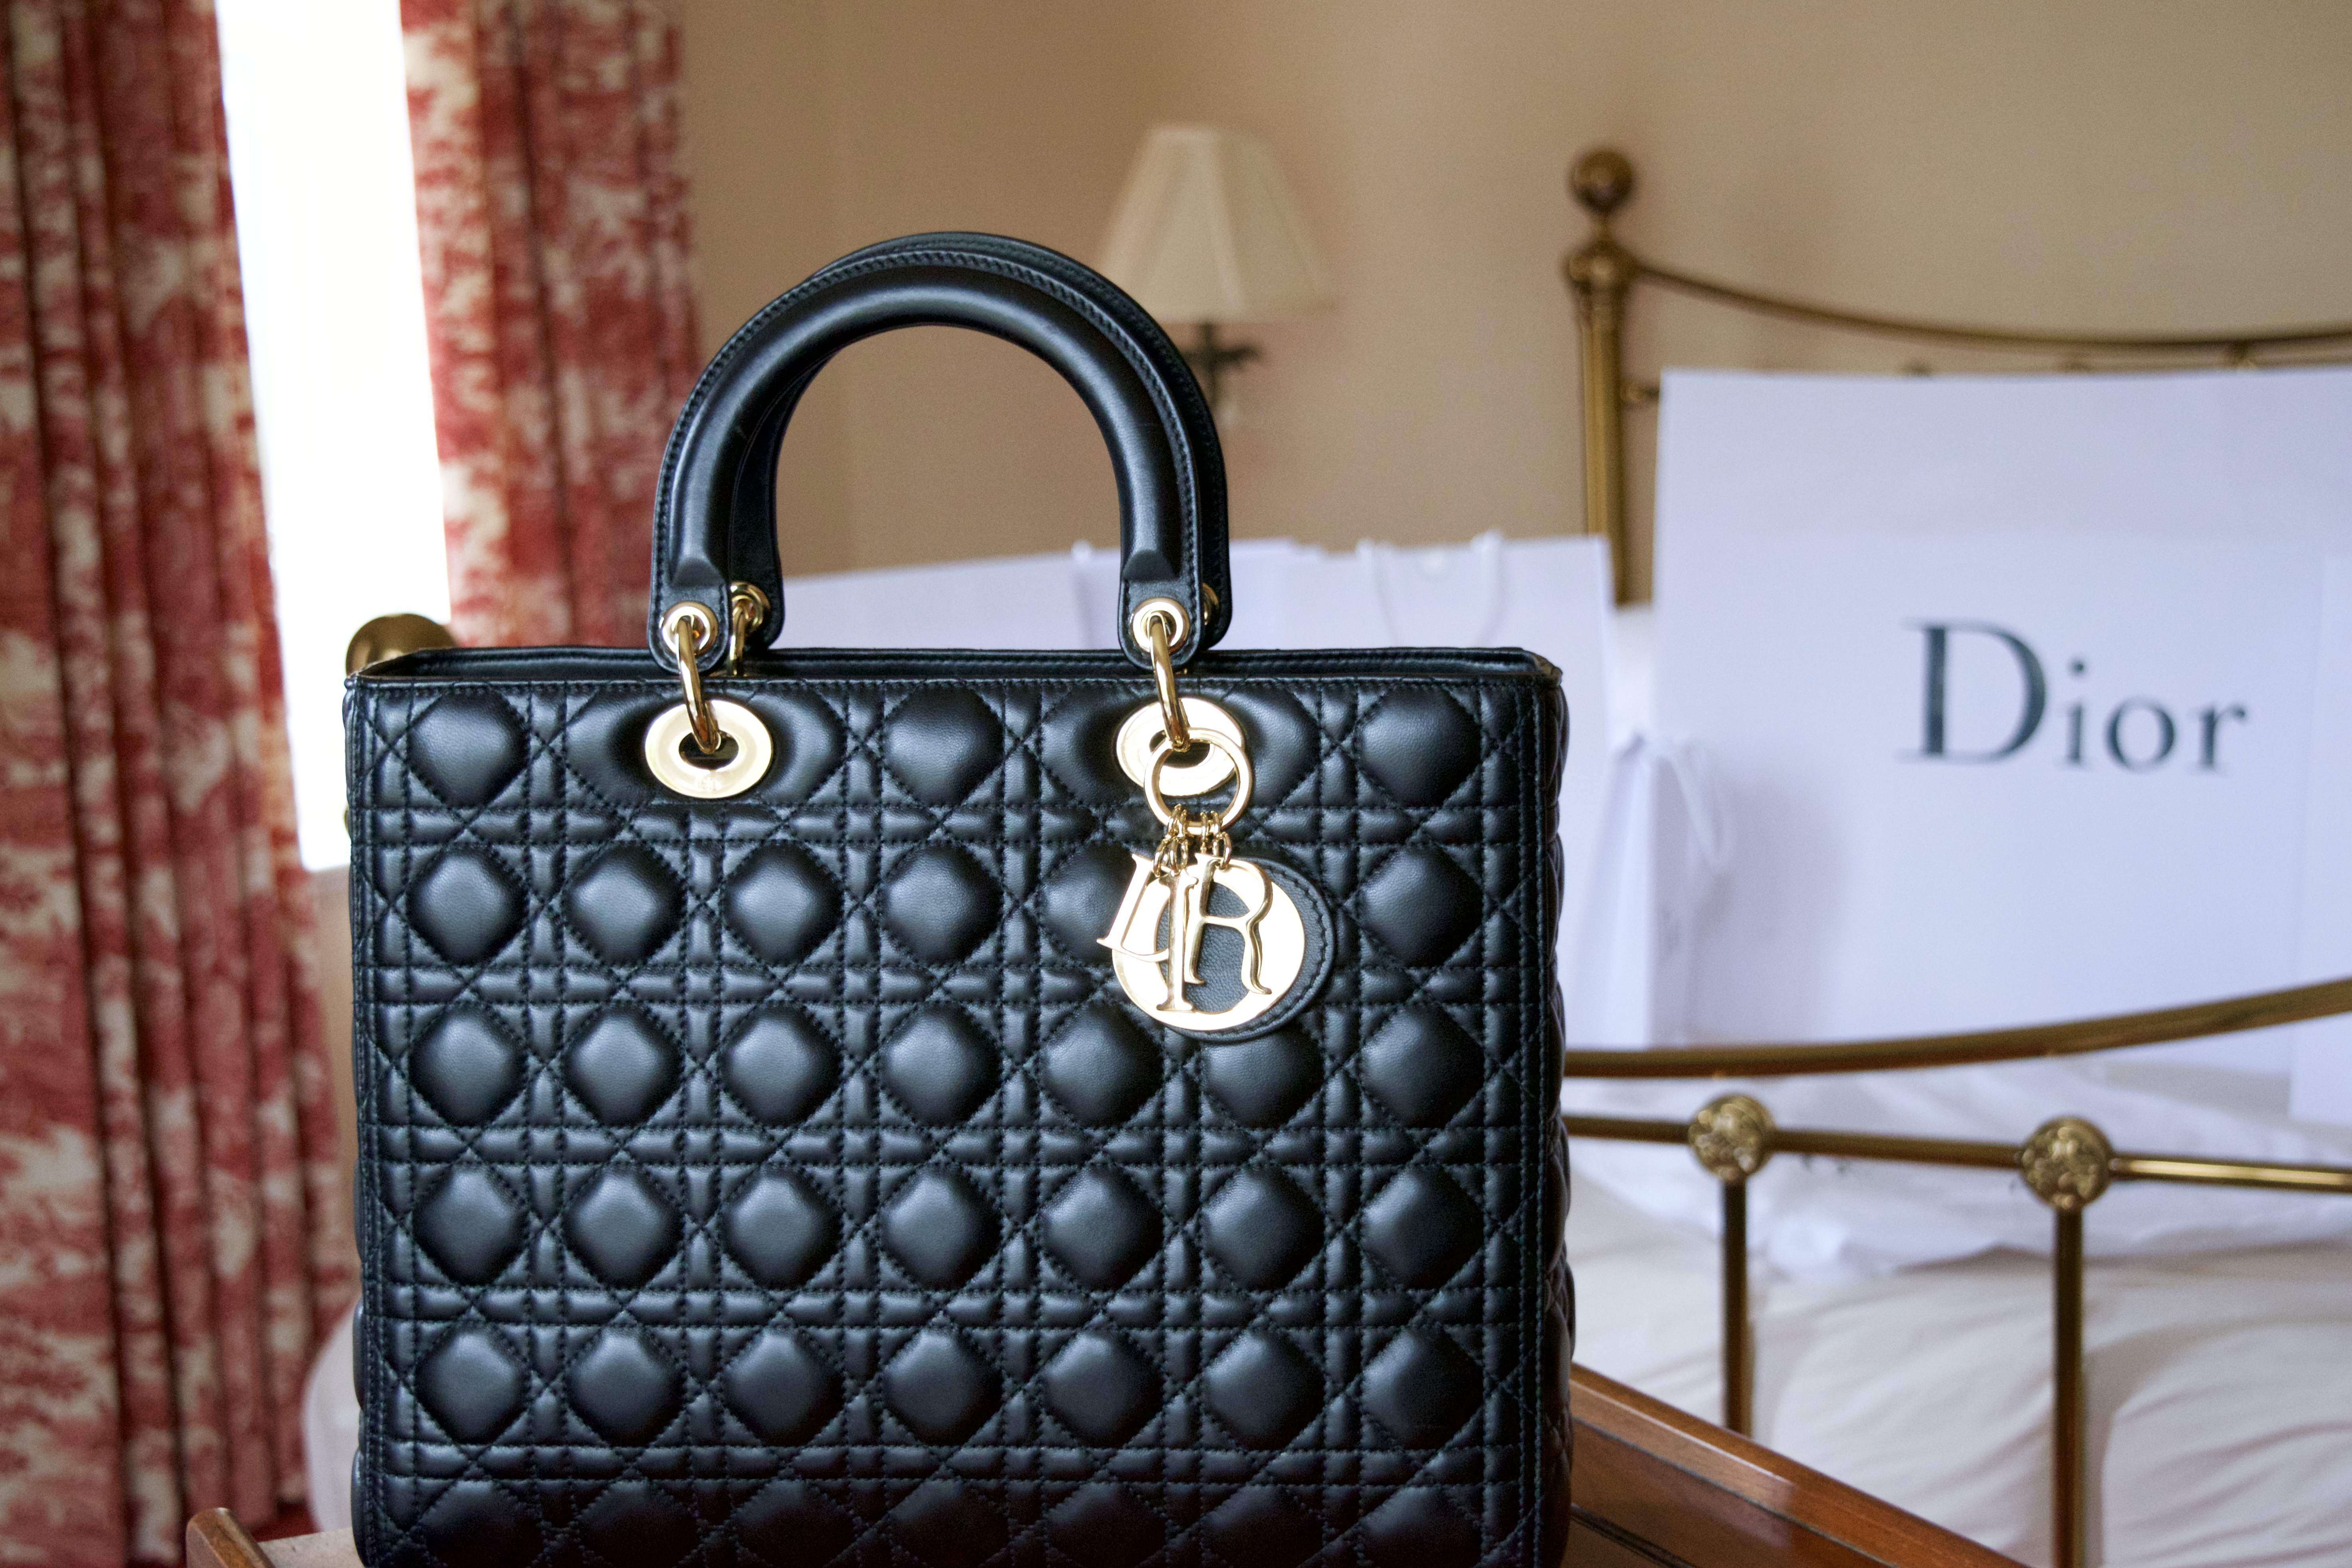 7296a205038f3 Thoughts on the Large Lady Dior